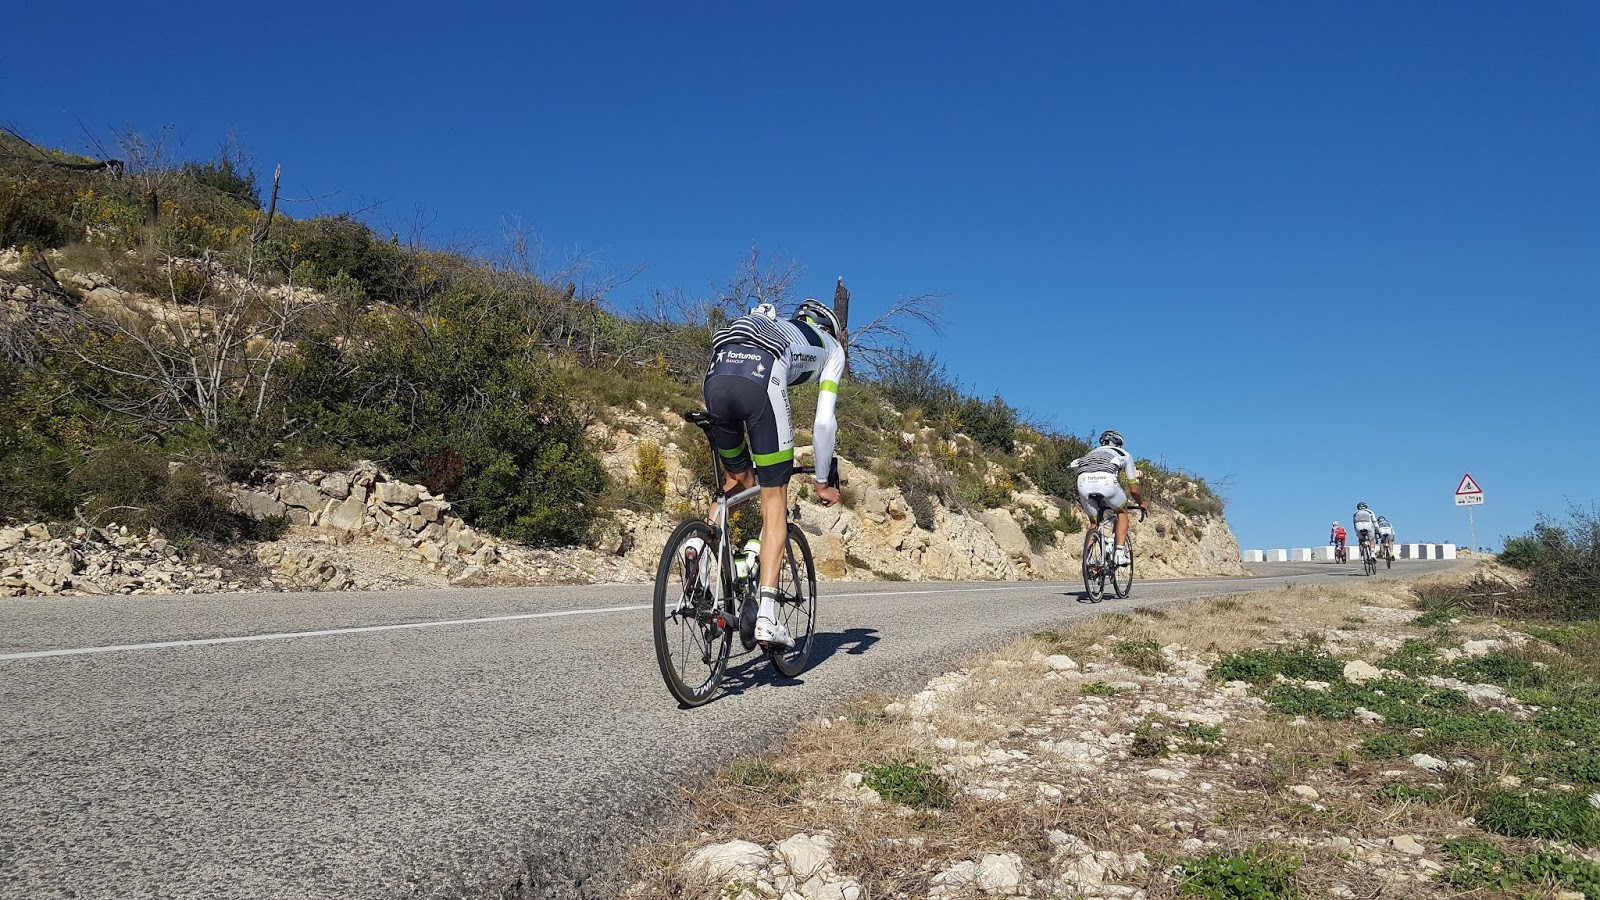 Cyclists climbing Vall d'ebo, Alicante, Spain